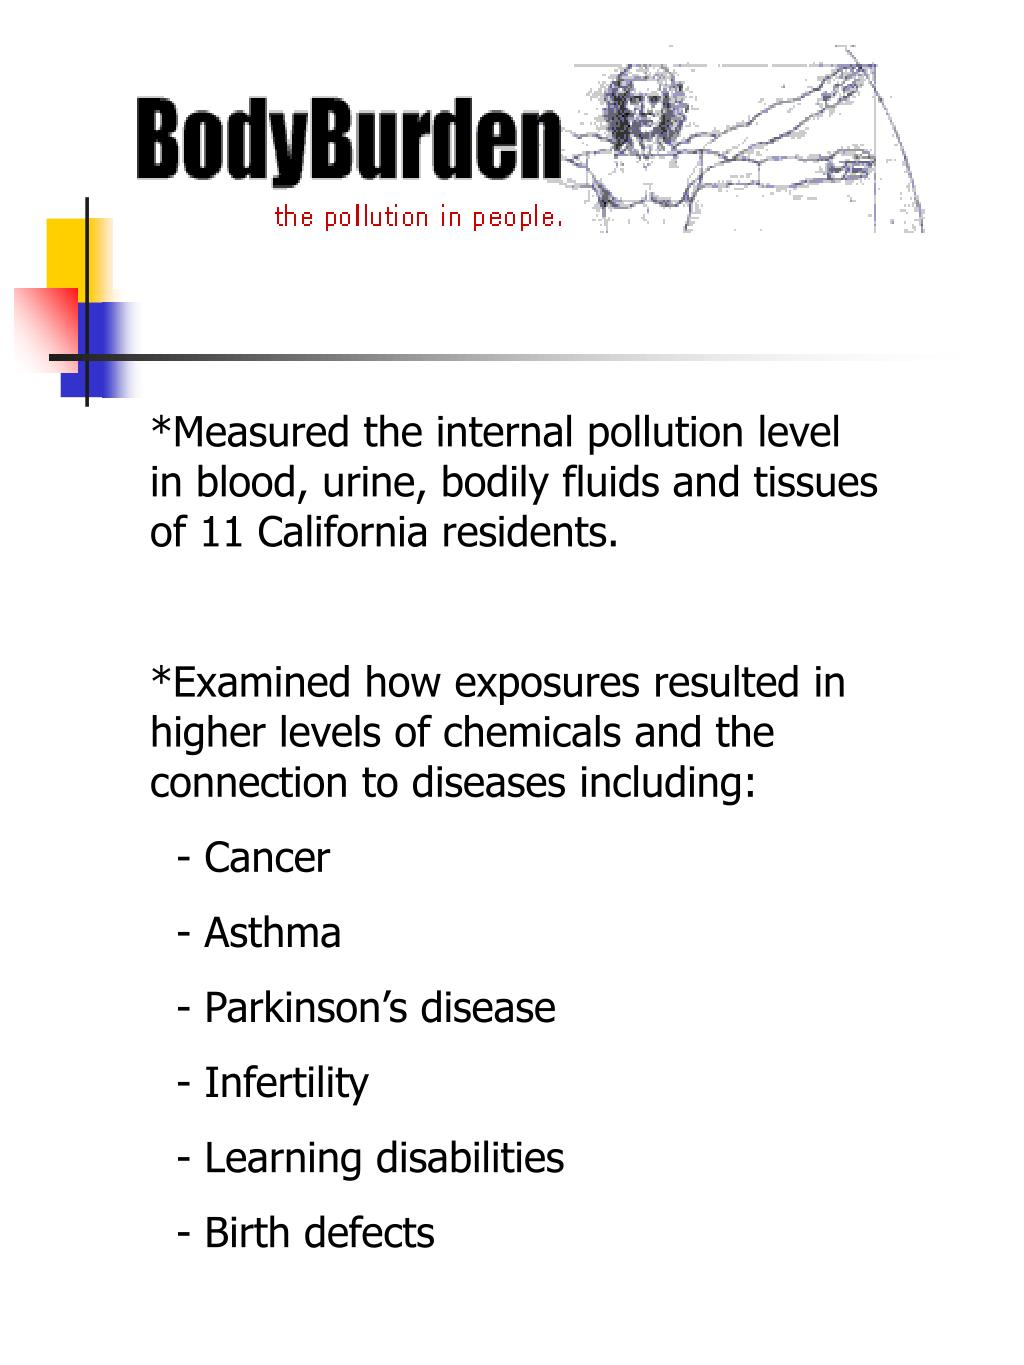 *Measured the internal pollution level in blood, urine, bodily fluids and tissues of 11 California residents.